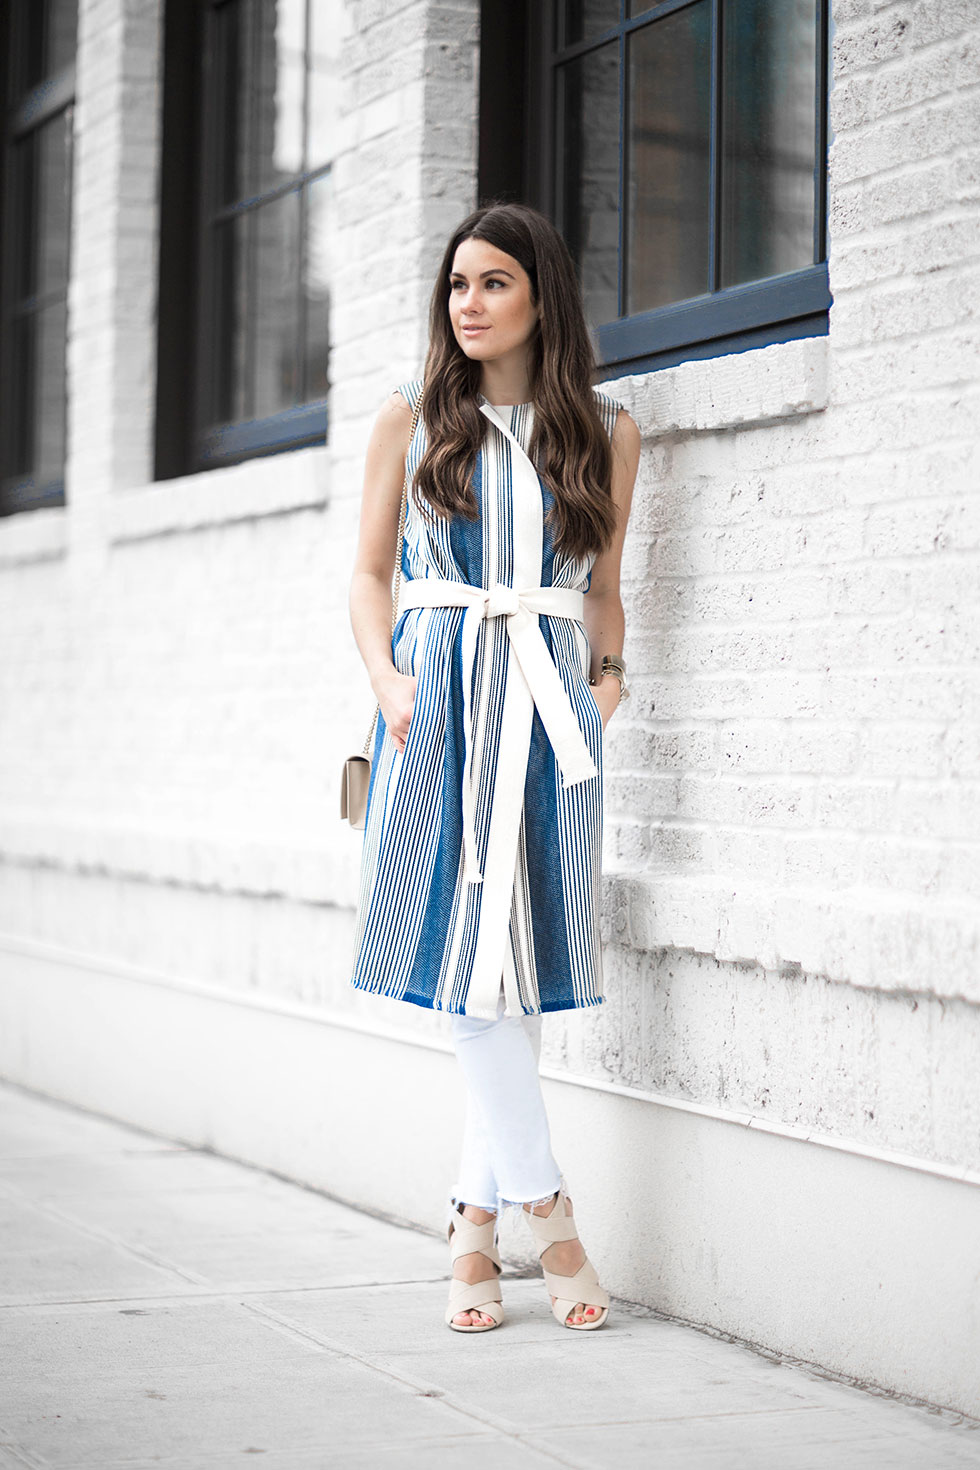 How to wear a belted stripe vest this spring featuring Lafayette 148 New York Fergie Belted Striped Vest